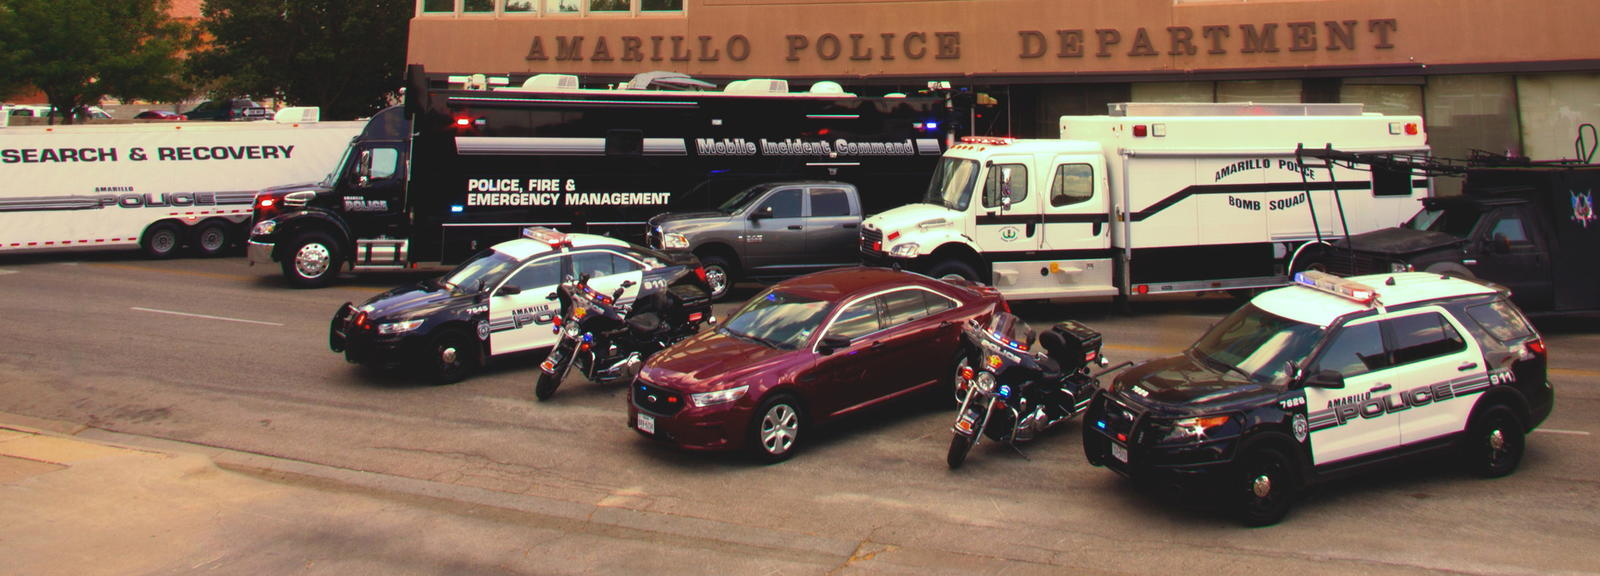 Photo by Amarillo Police